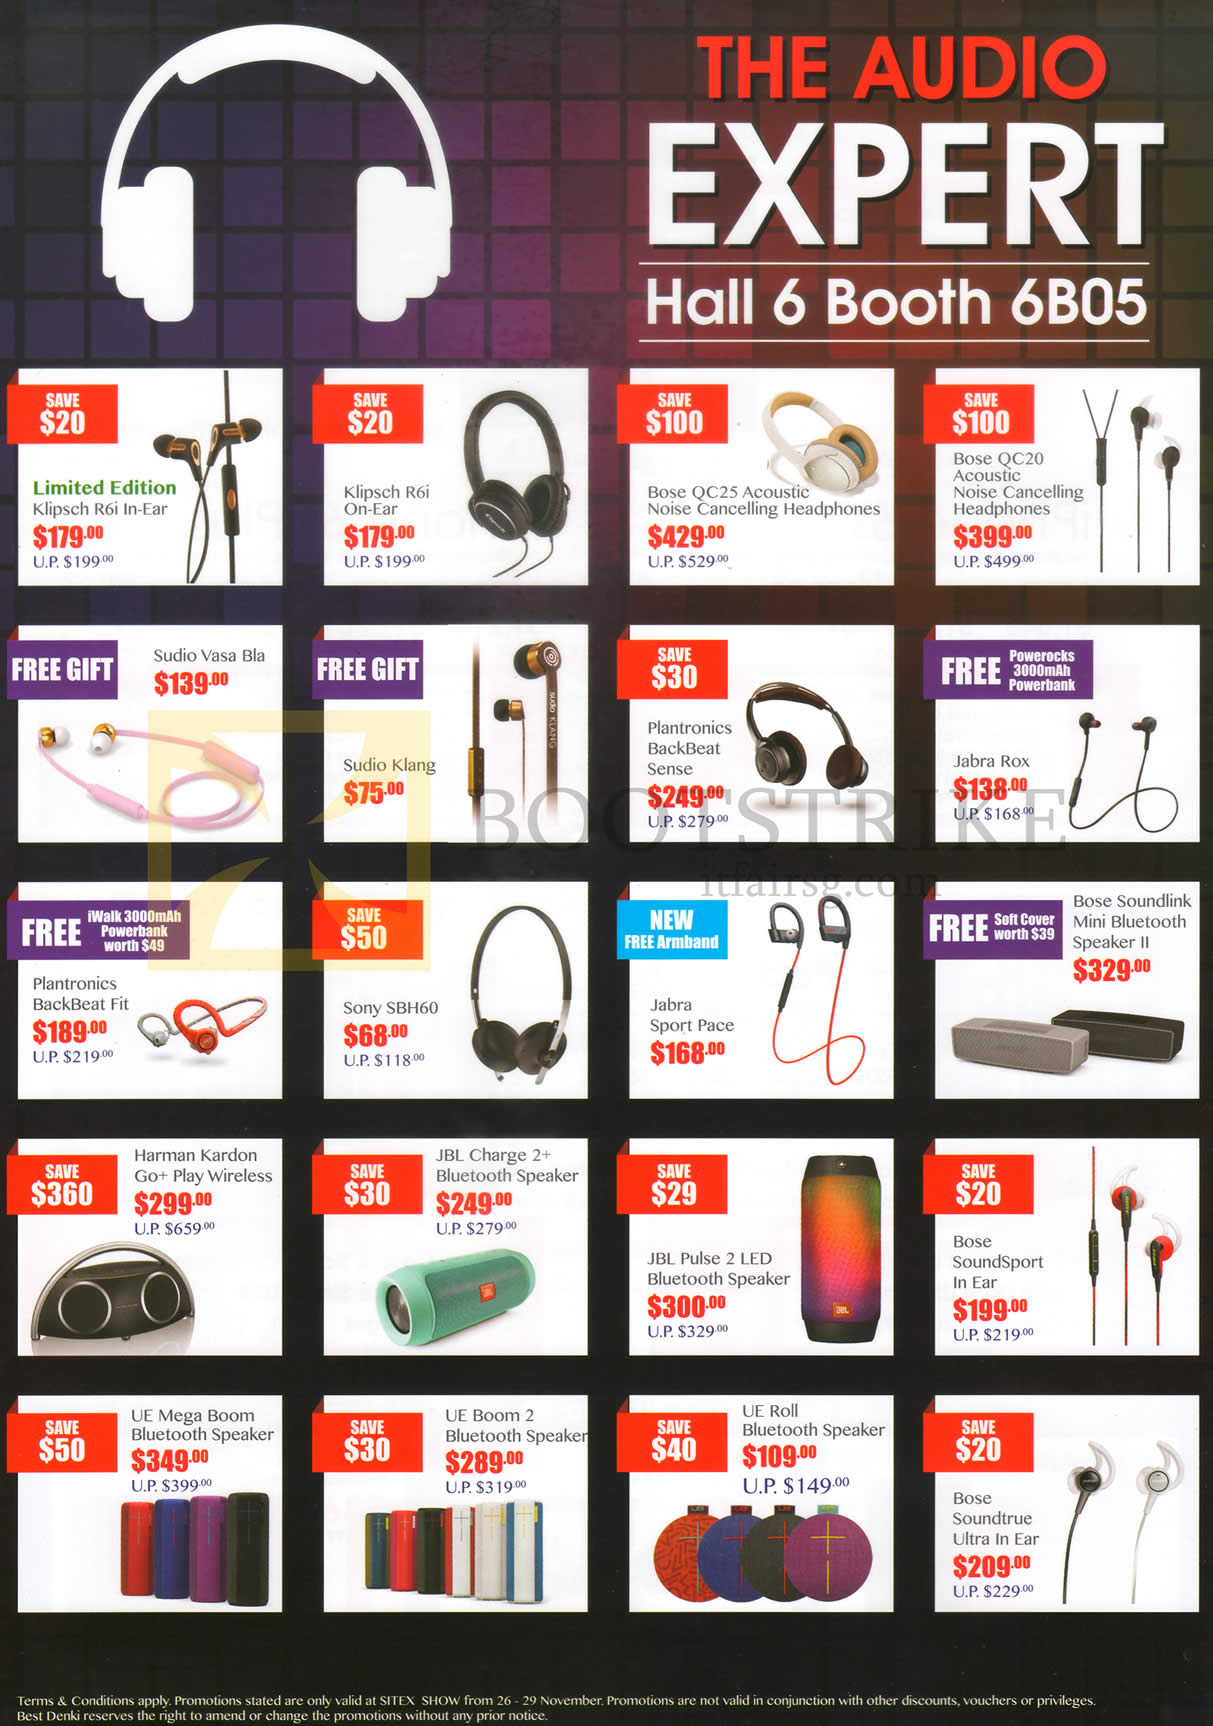 SITEX 2015 price list image brochure of Best Denki Earphones, Headphones, Mobile Phone, Bluetooth Speakers, UE Roll, Bose, Harman Kardon, Sony, Jabra, Plantronics